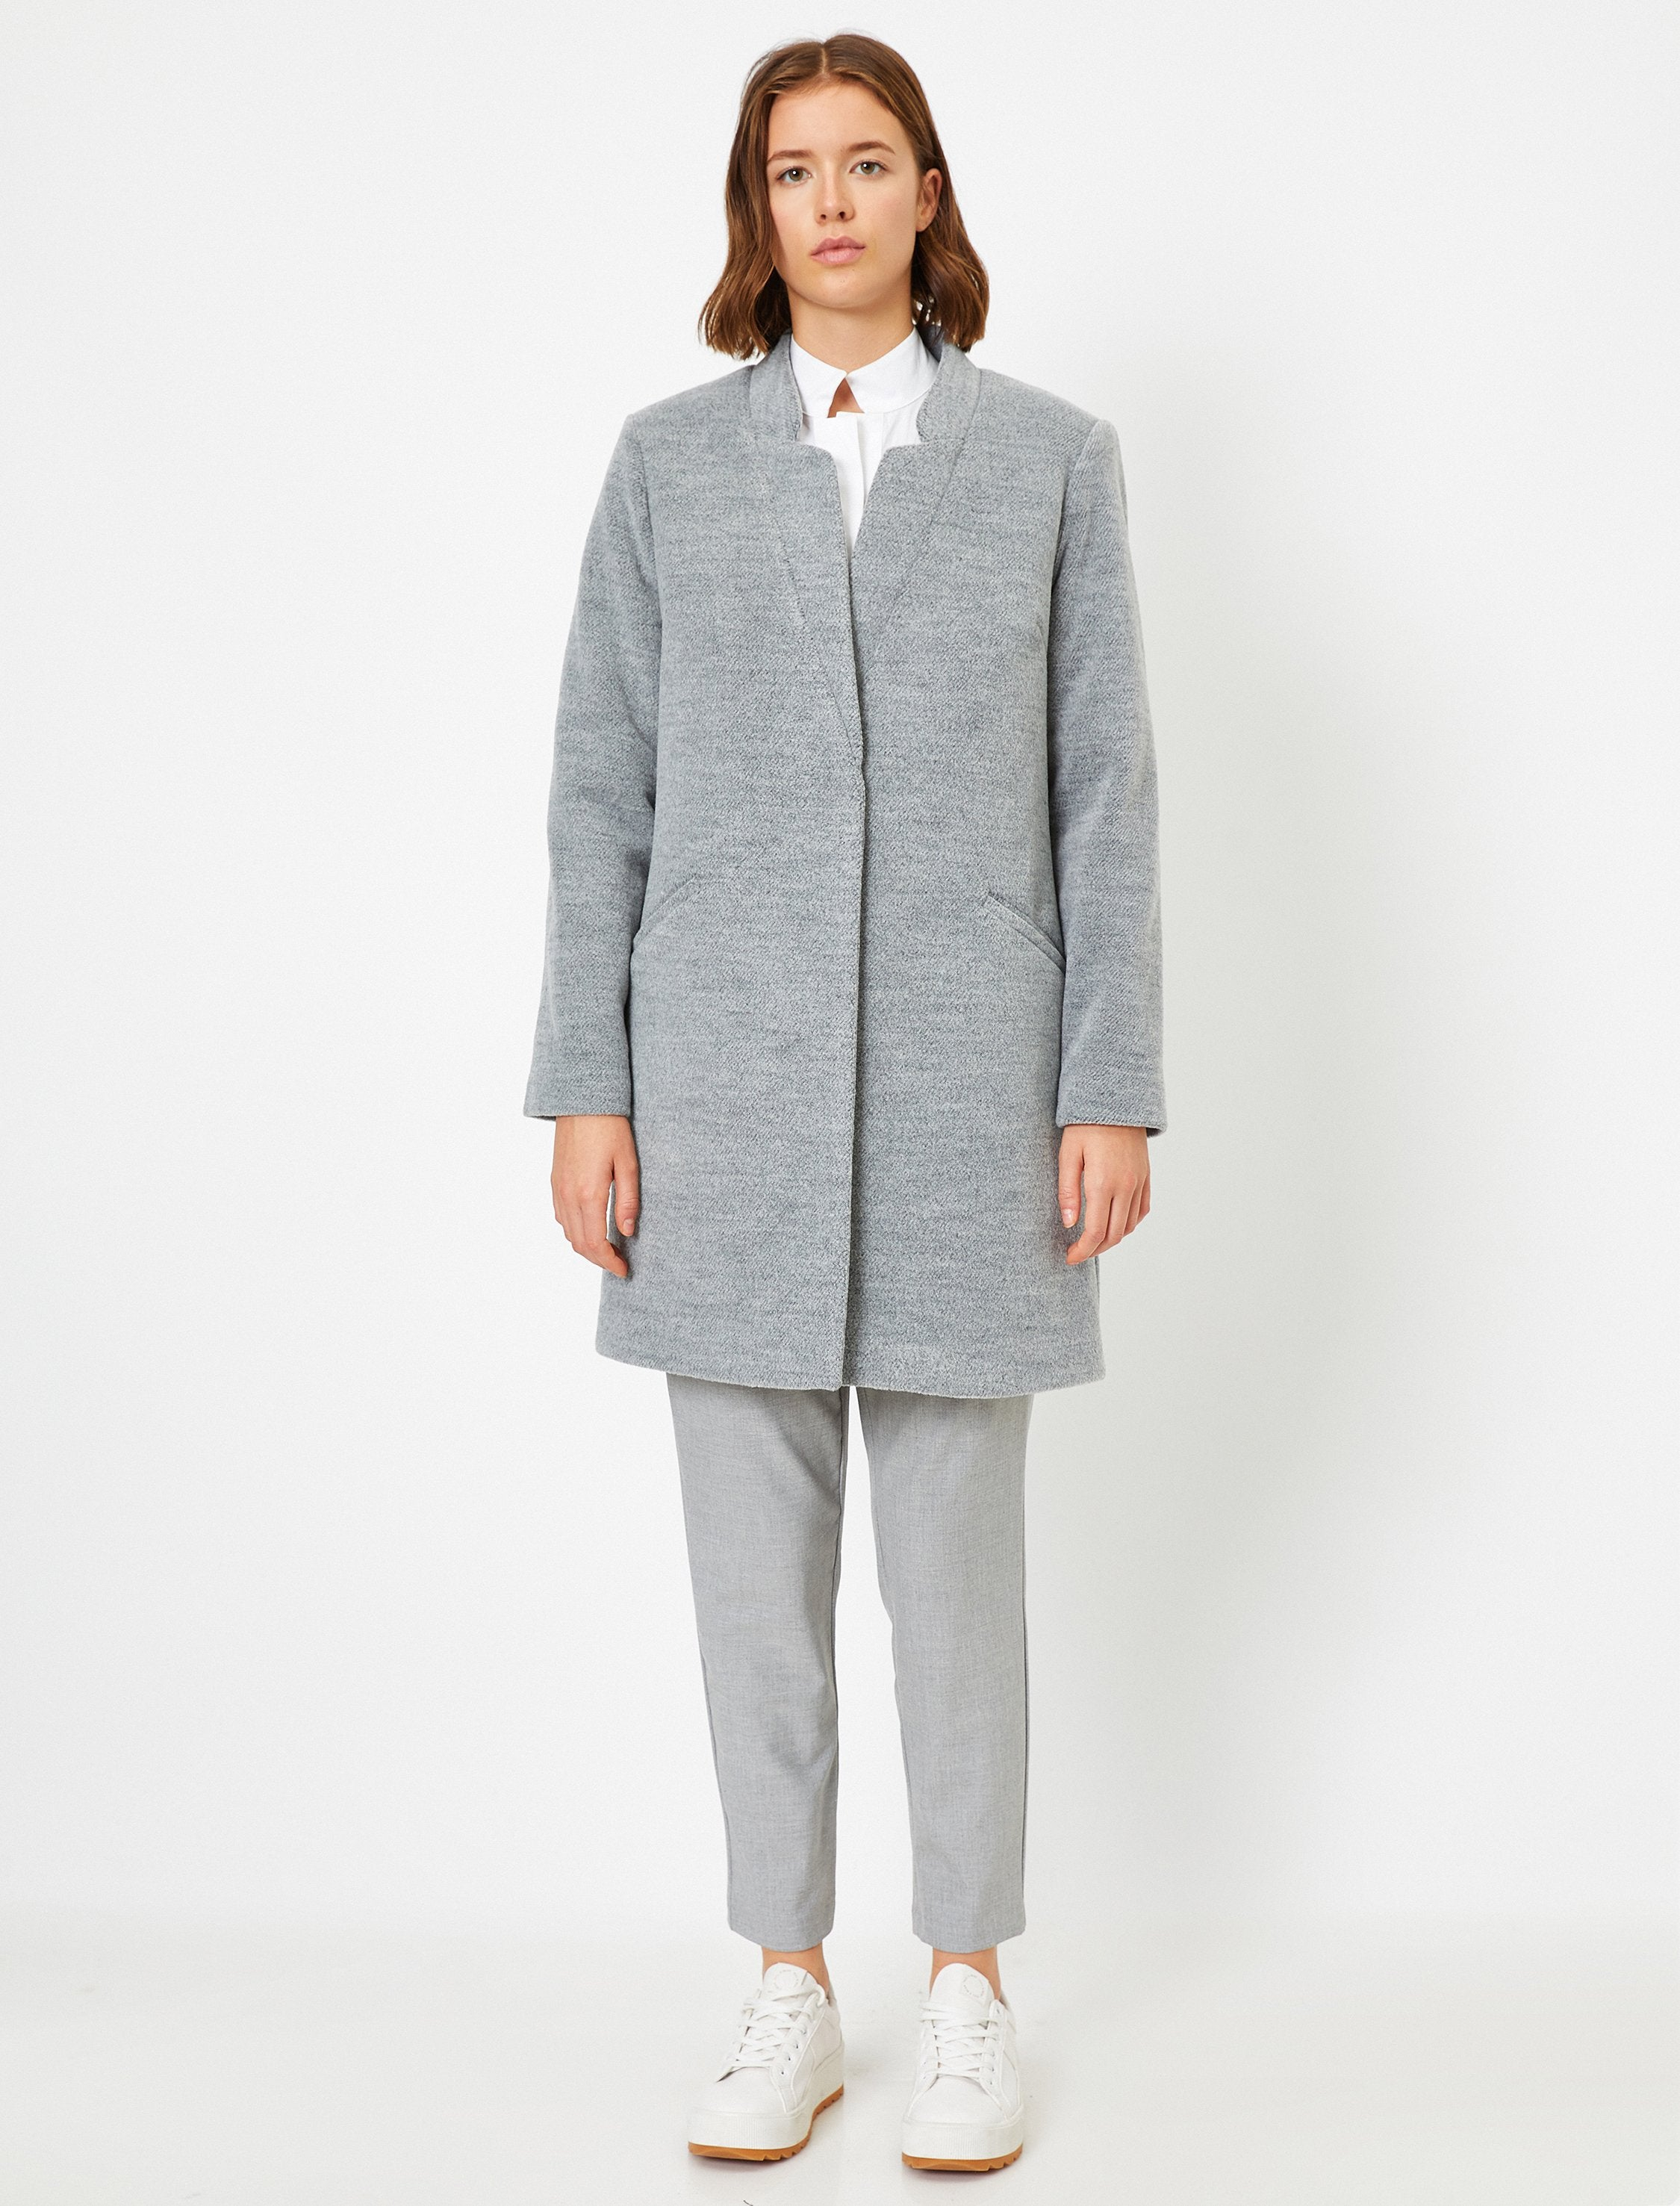 Oversized Soft-Brushed Overcoat in Gray